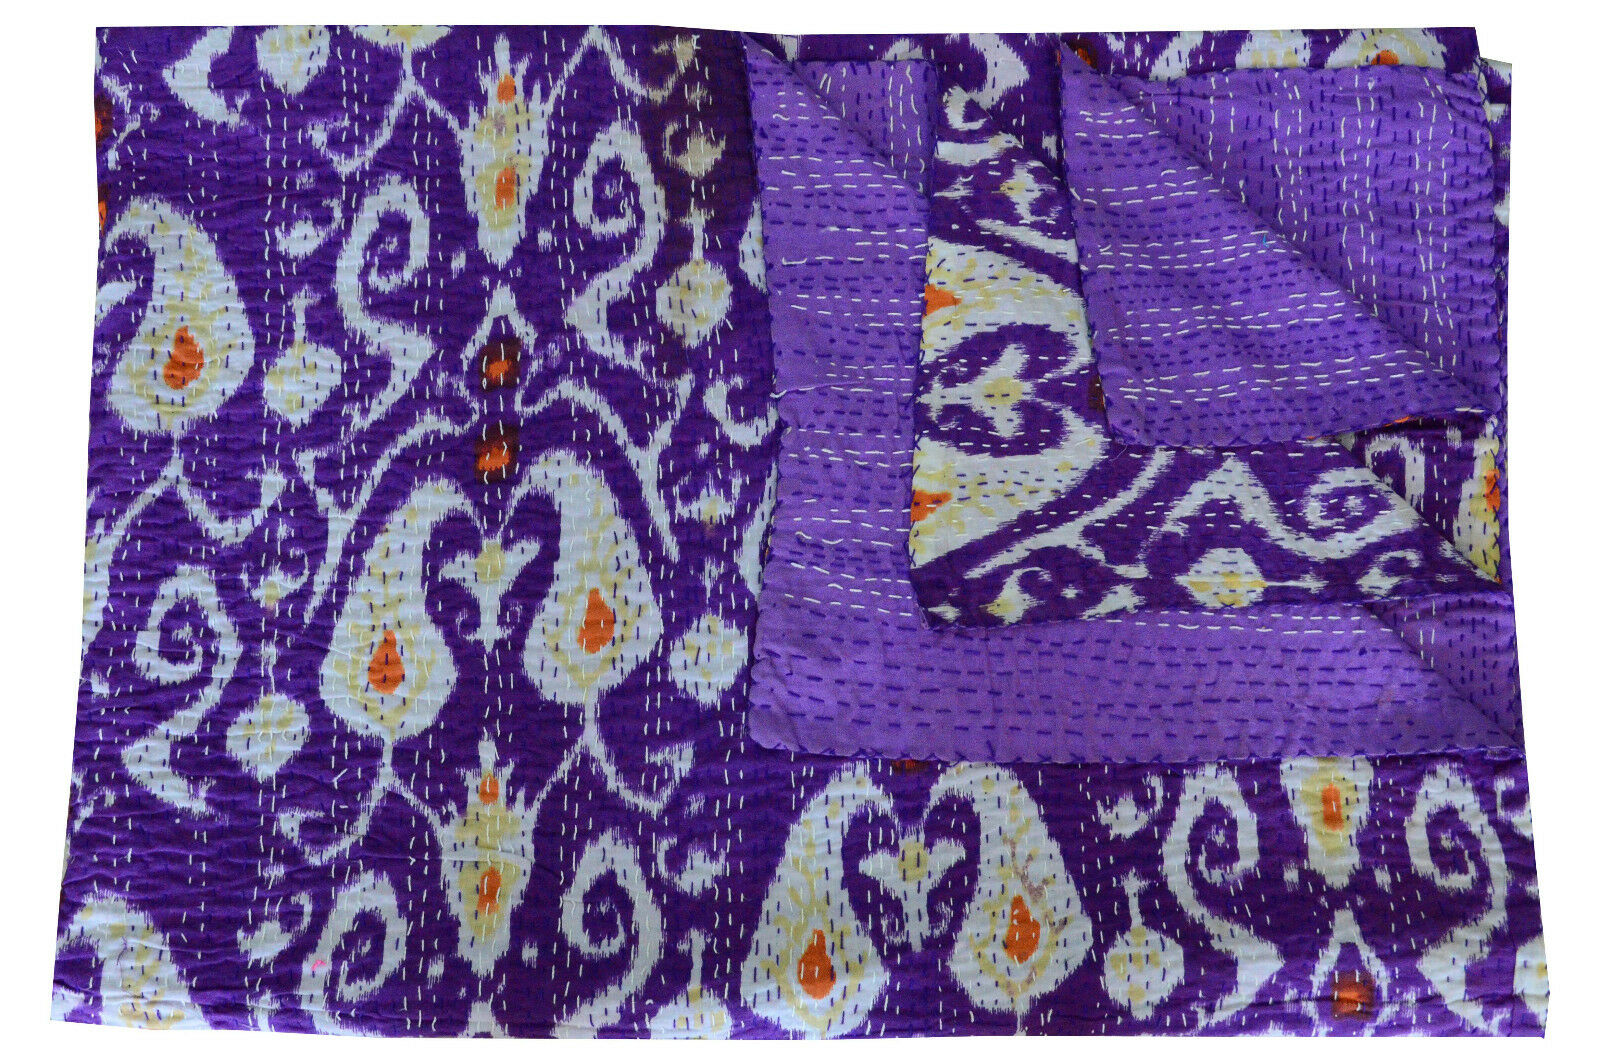 Indain Paisley Print Kantha Quilt Cotton Purple Bedspread Throw Bedding Bedcover